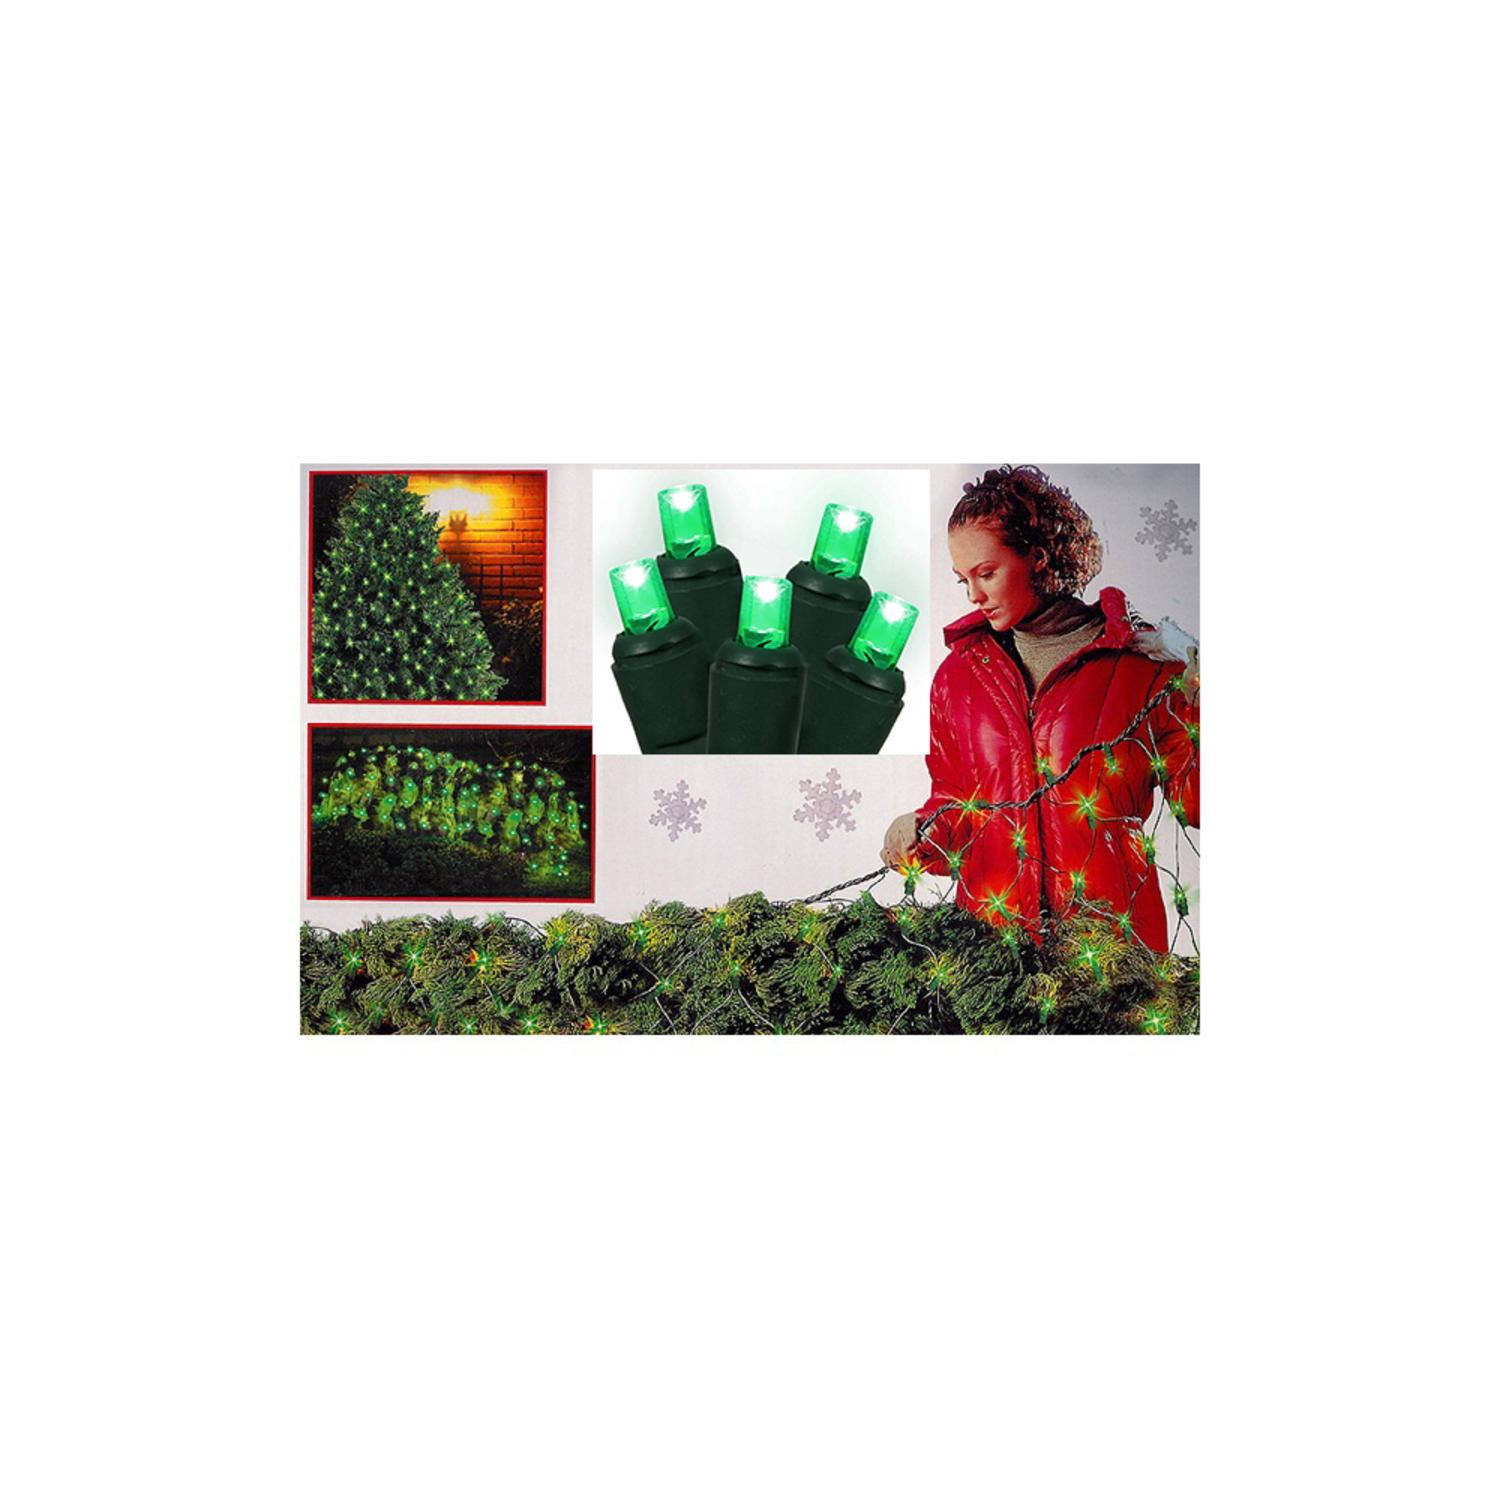 4' x 6' Green Wide Angle LED Net Style Christmas Lights - Green Wire